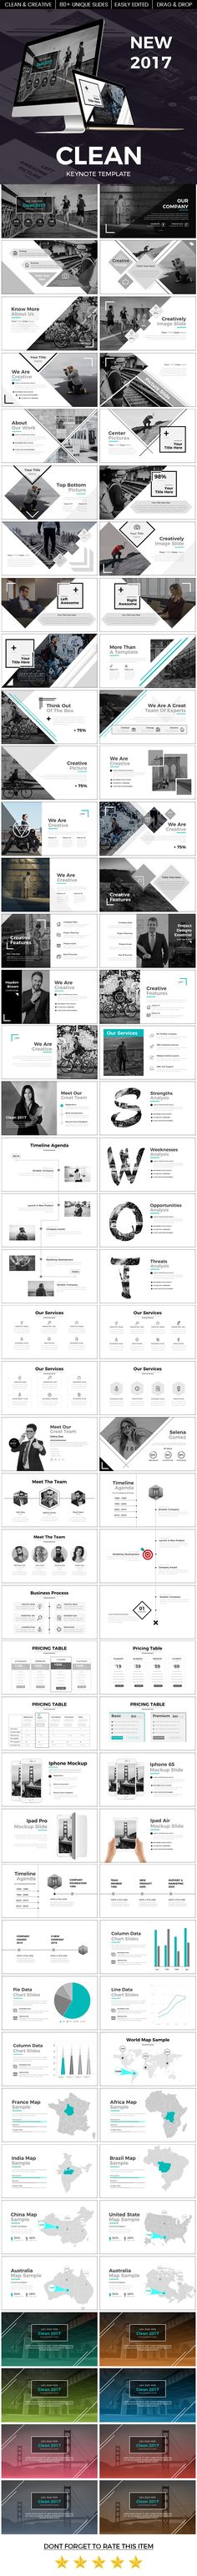 Clean 2017 Keynote Template - Keynote Templates Presentation Templates